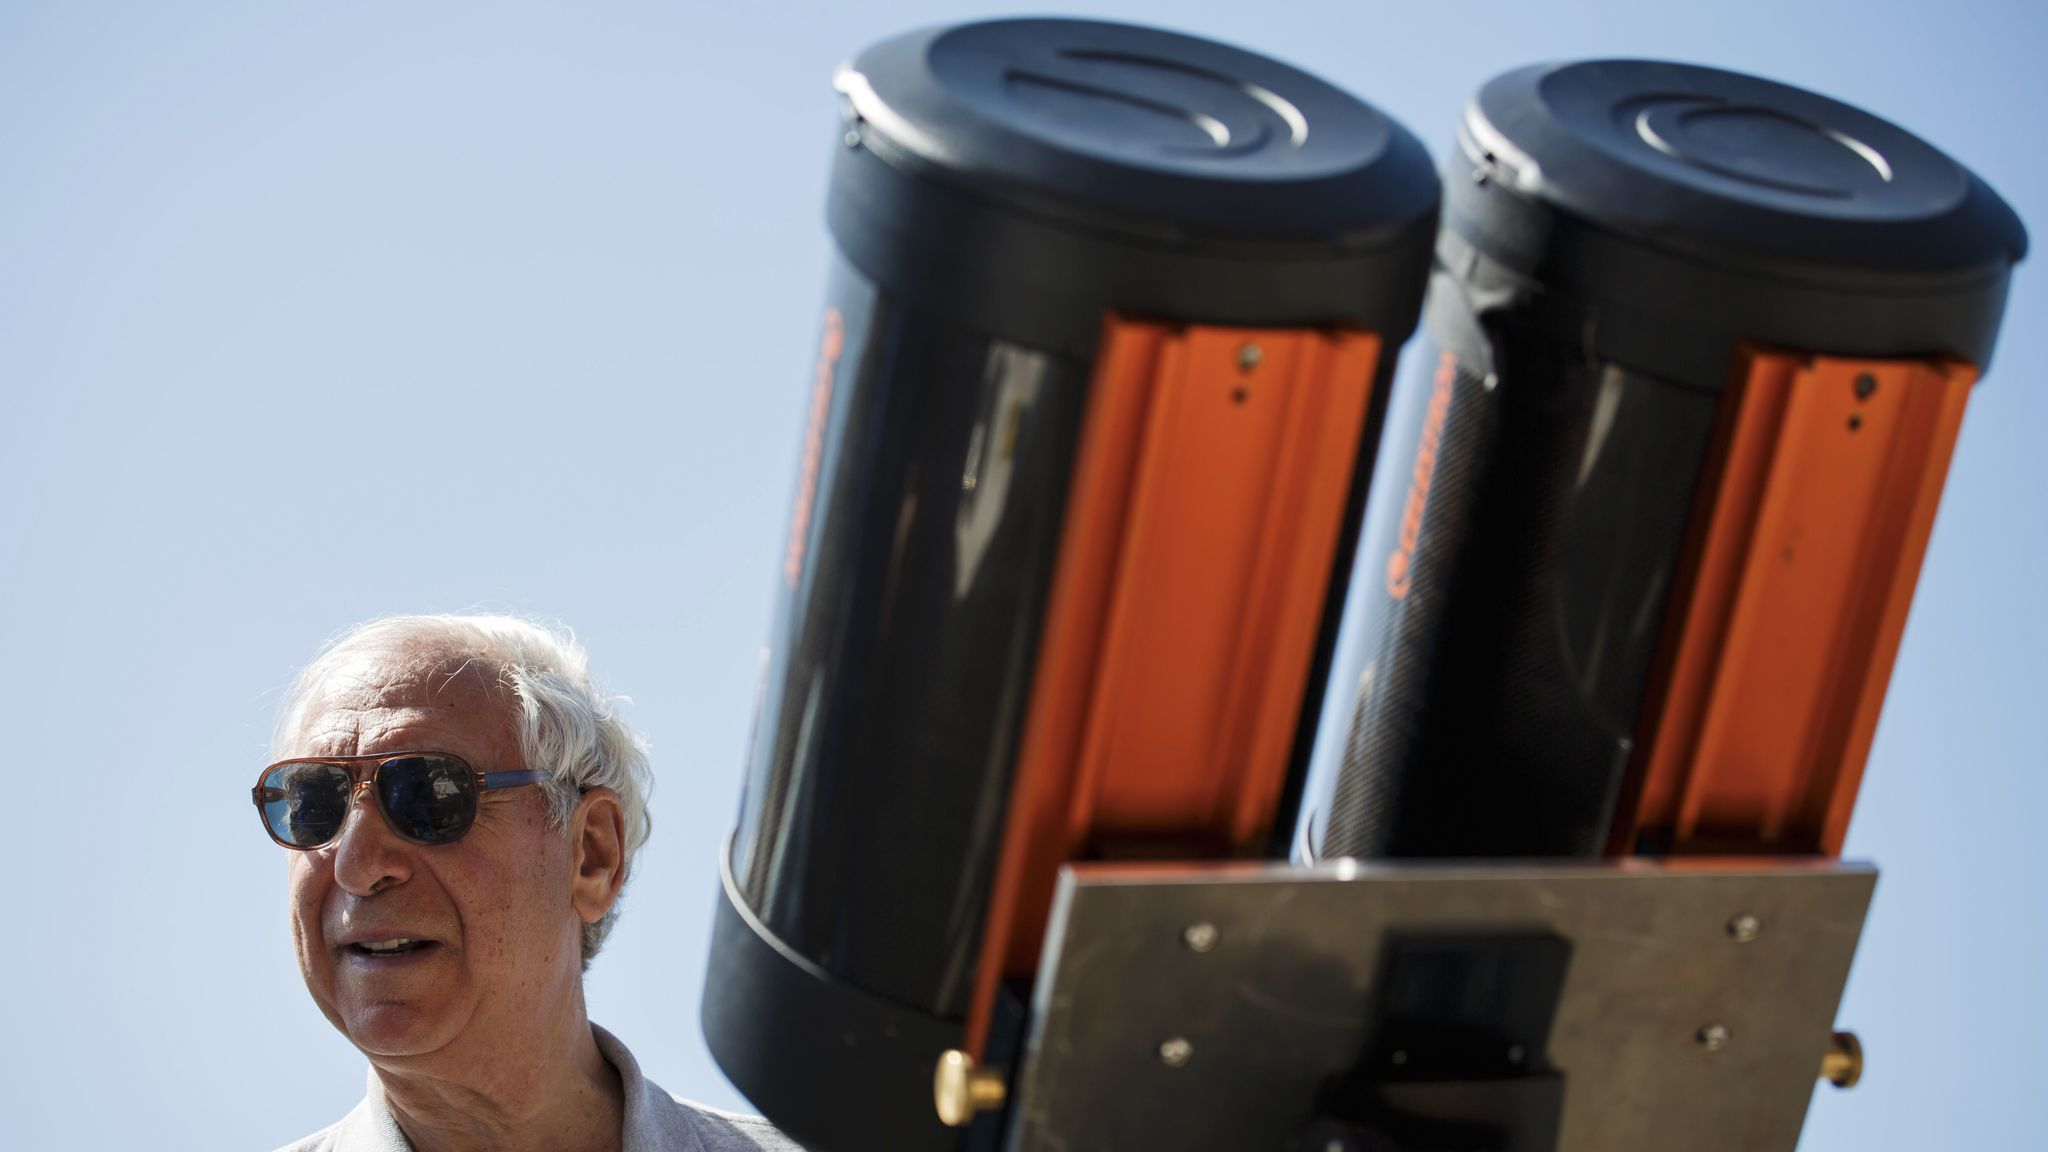 Jay Pasachoff supervises a large telescope being set up to observe the solar eclipse at Willamette University in Oregon.